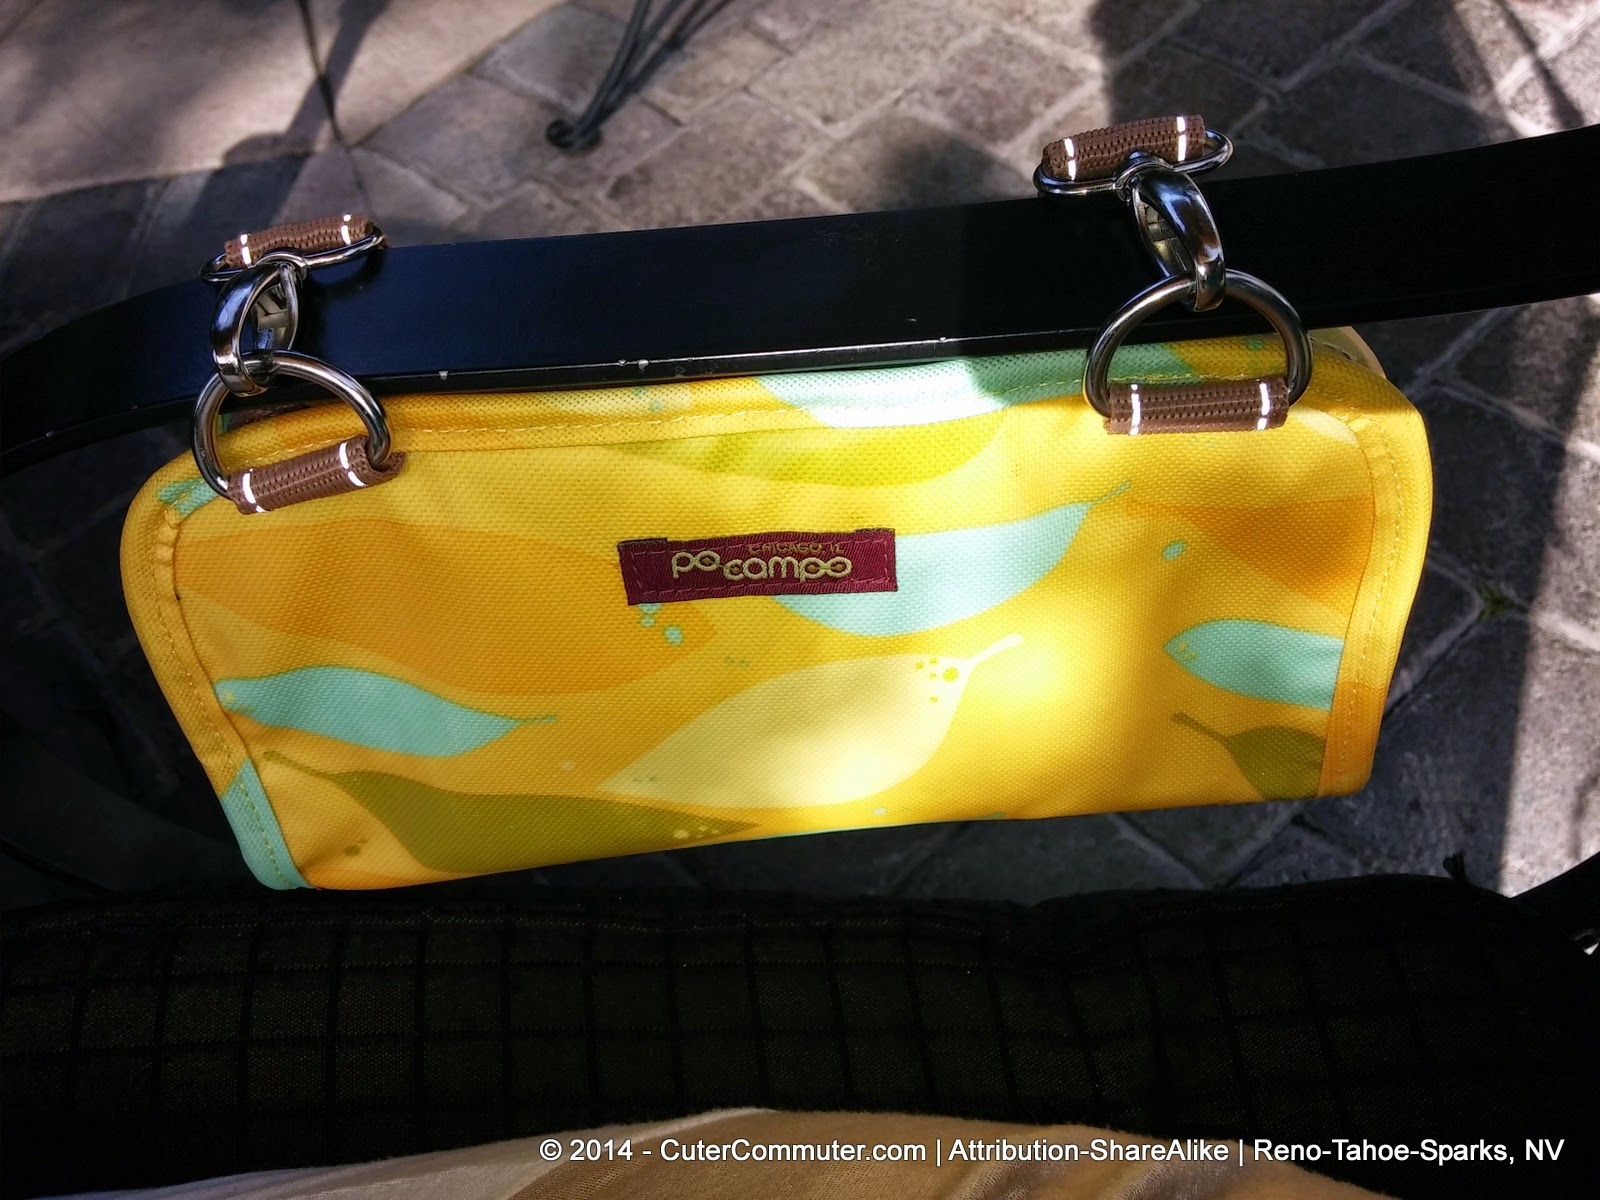 Po Campo Yellow Feathers Six Corners Handlebar Bag strapped on arm of patio chair